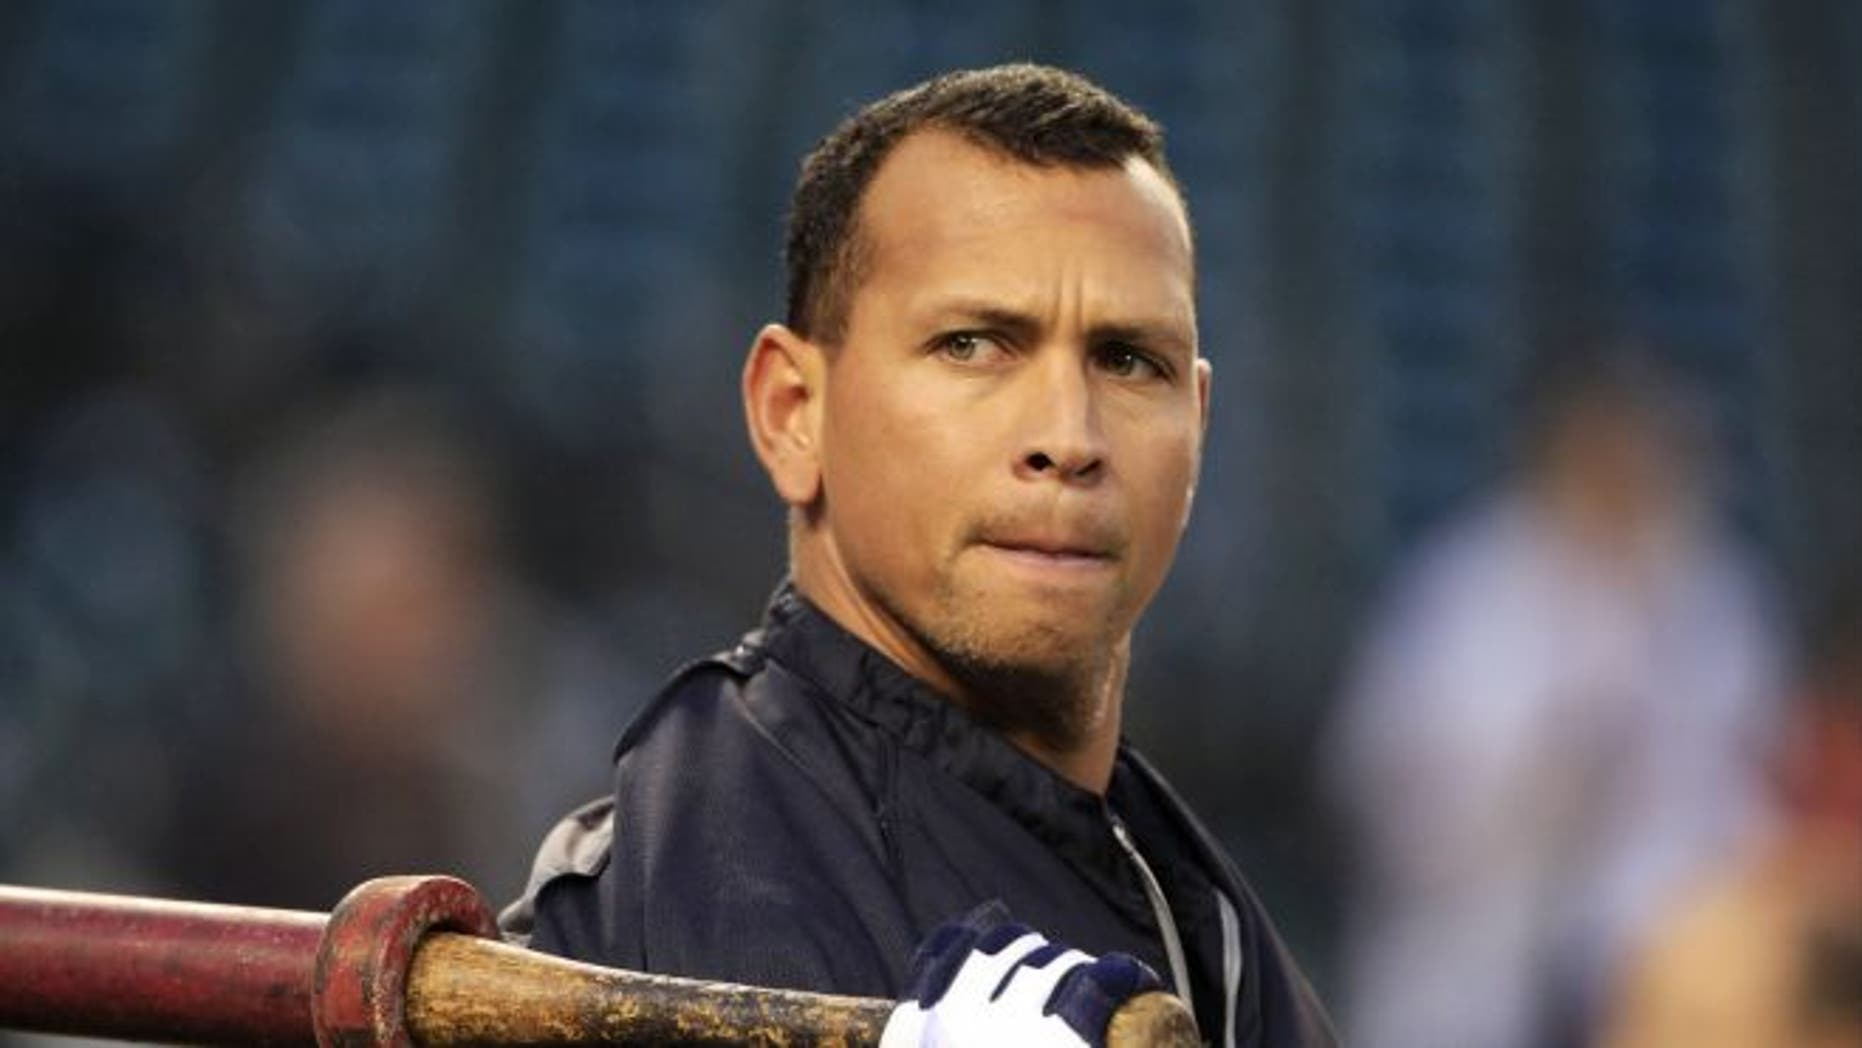 Oct. 17, 2012: New York Yankees' Alex Rodriguez takes batting practice before Game 4 of the American League championship series against the Detroit Tigers, in Detroit.